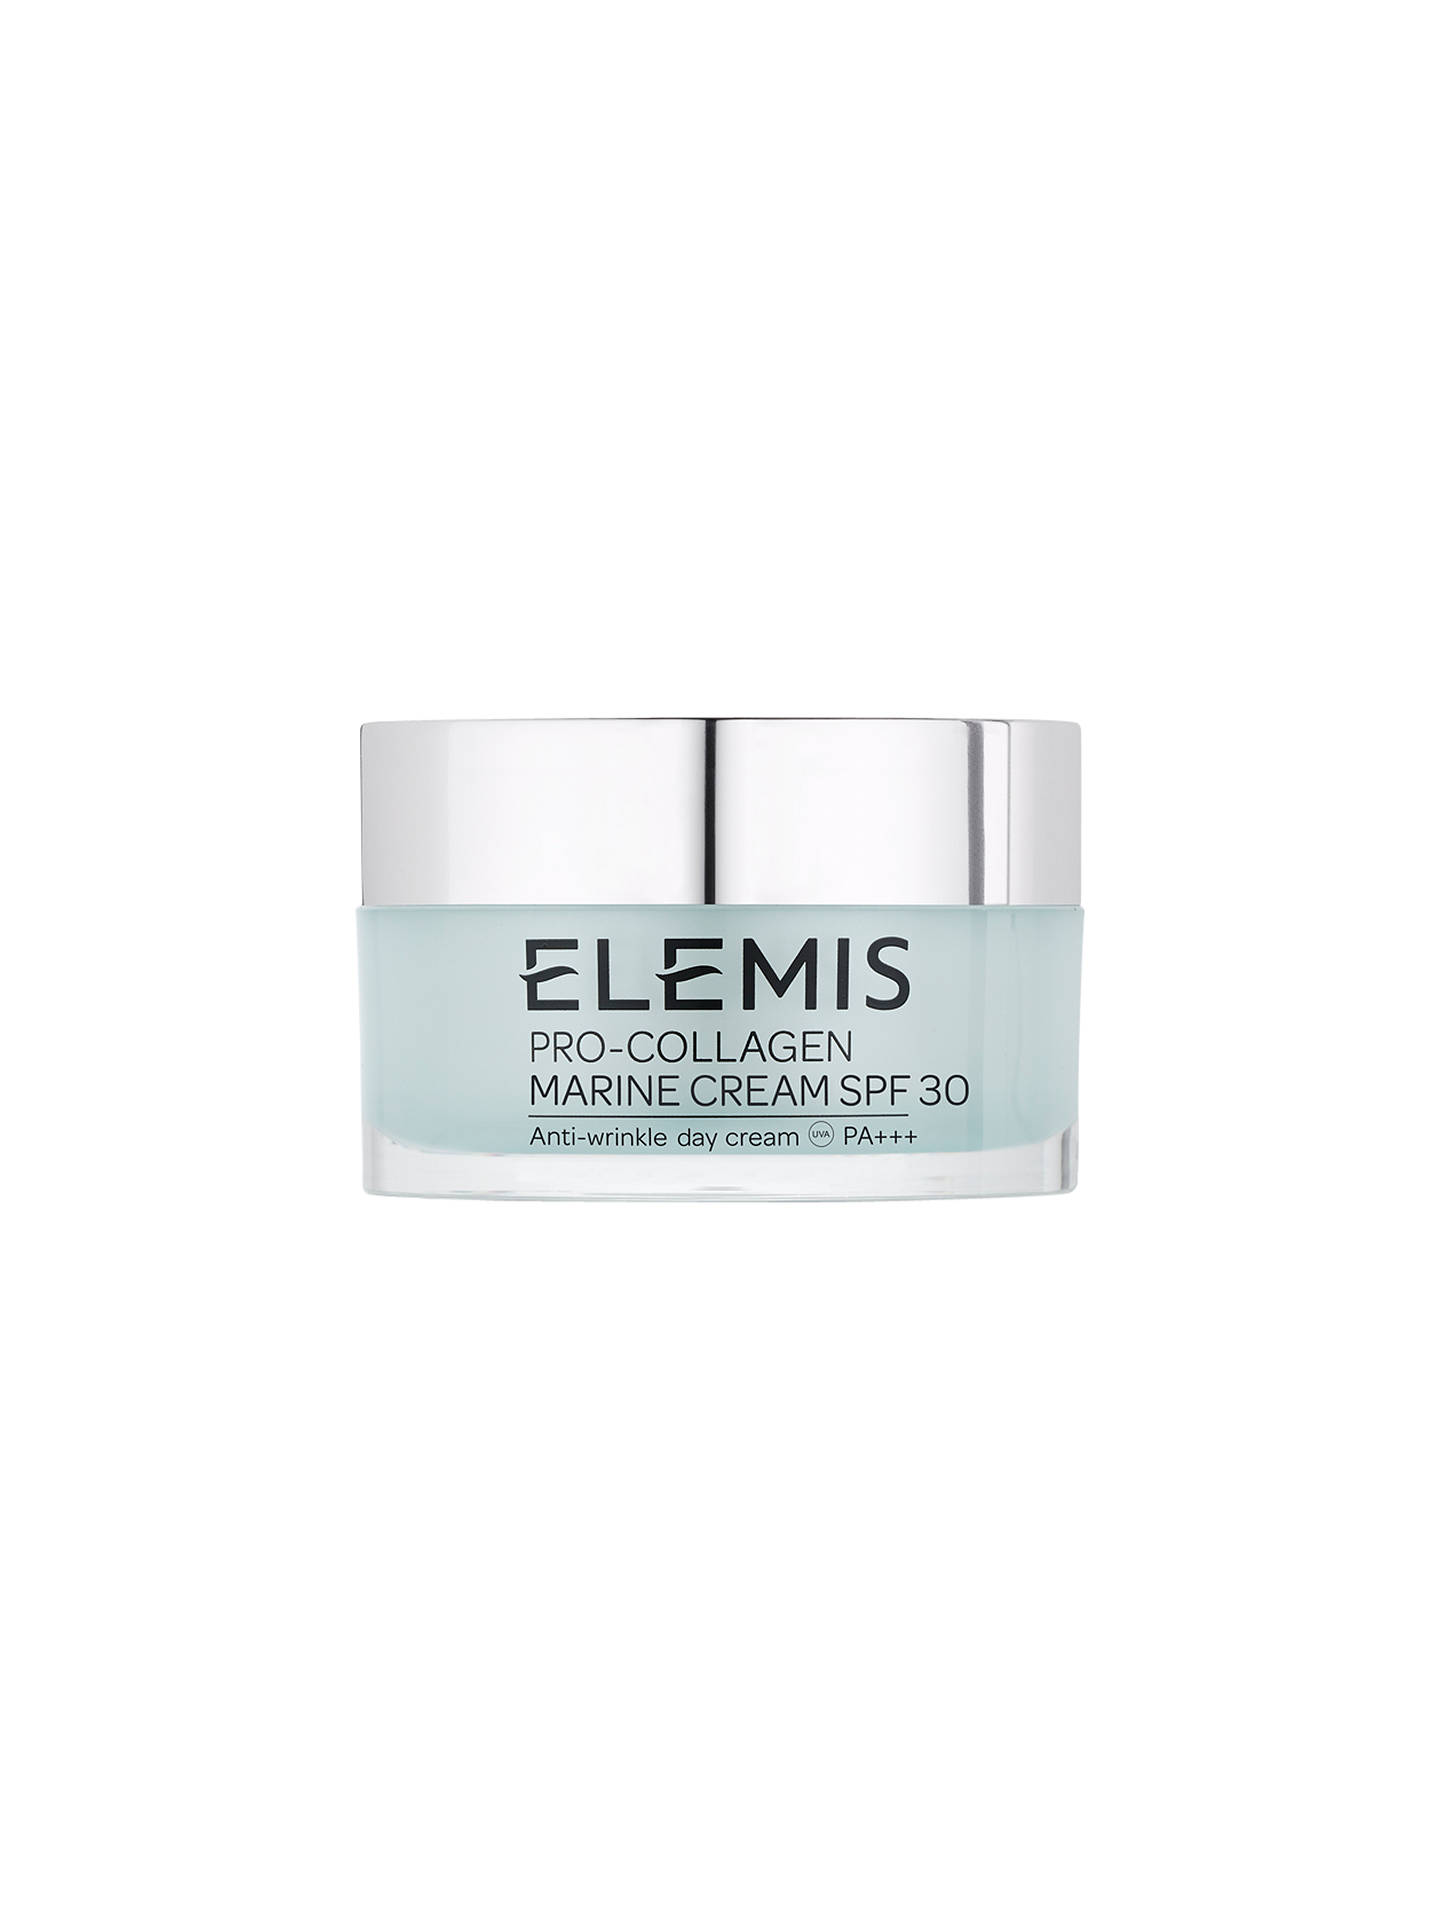 Buy Elemis Pro-Collagen Marine Cream SPF 30 Anti-Wrinkle Day Cream, 50ml Online at johnlewis.com